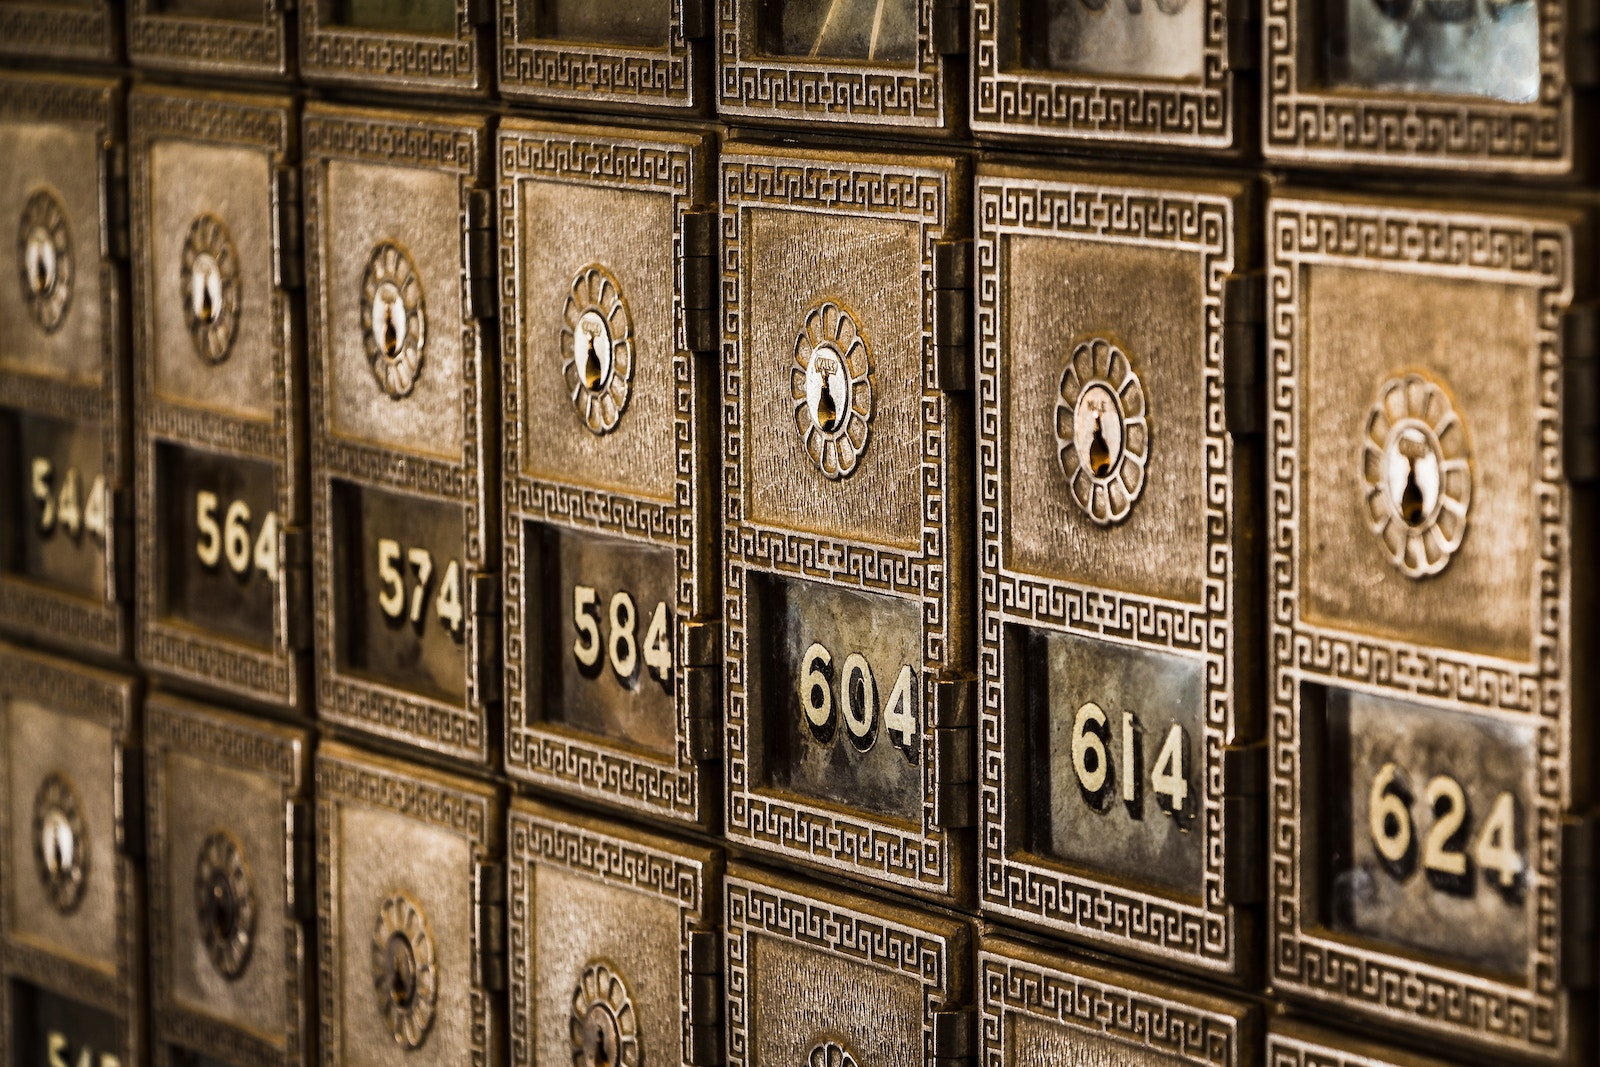 Metal Deposit Boxes Retirement